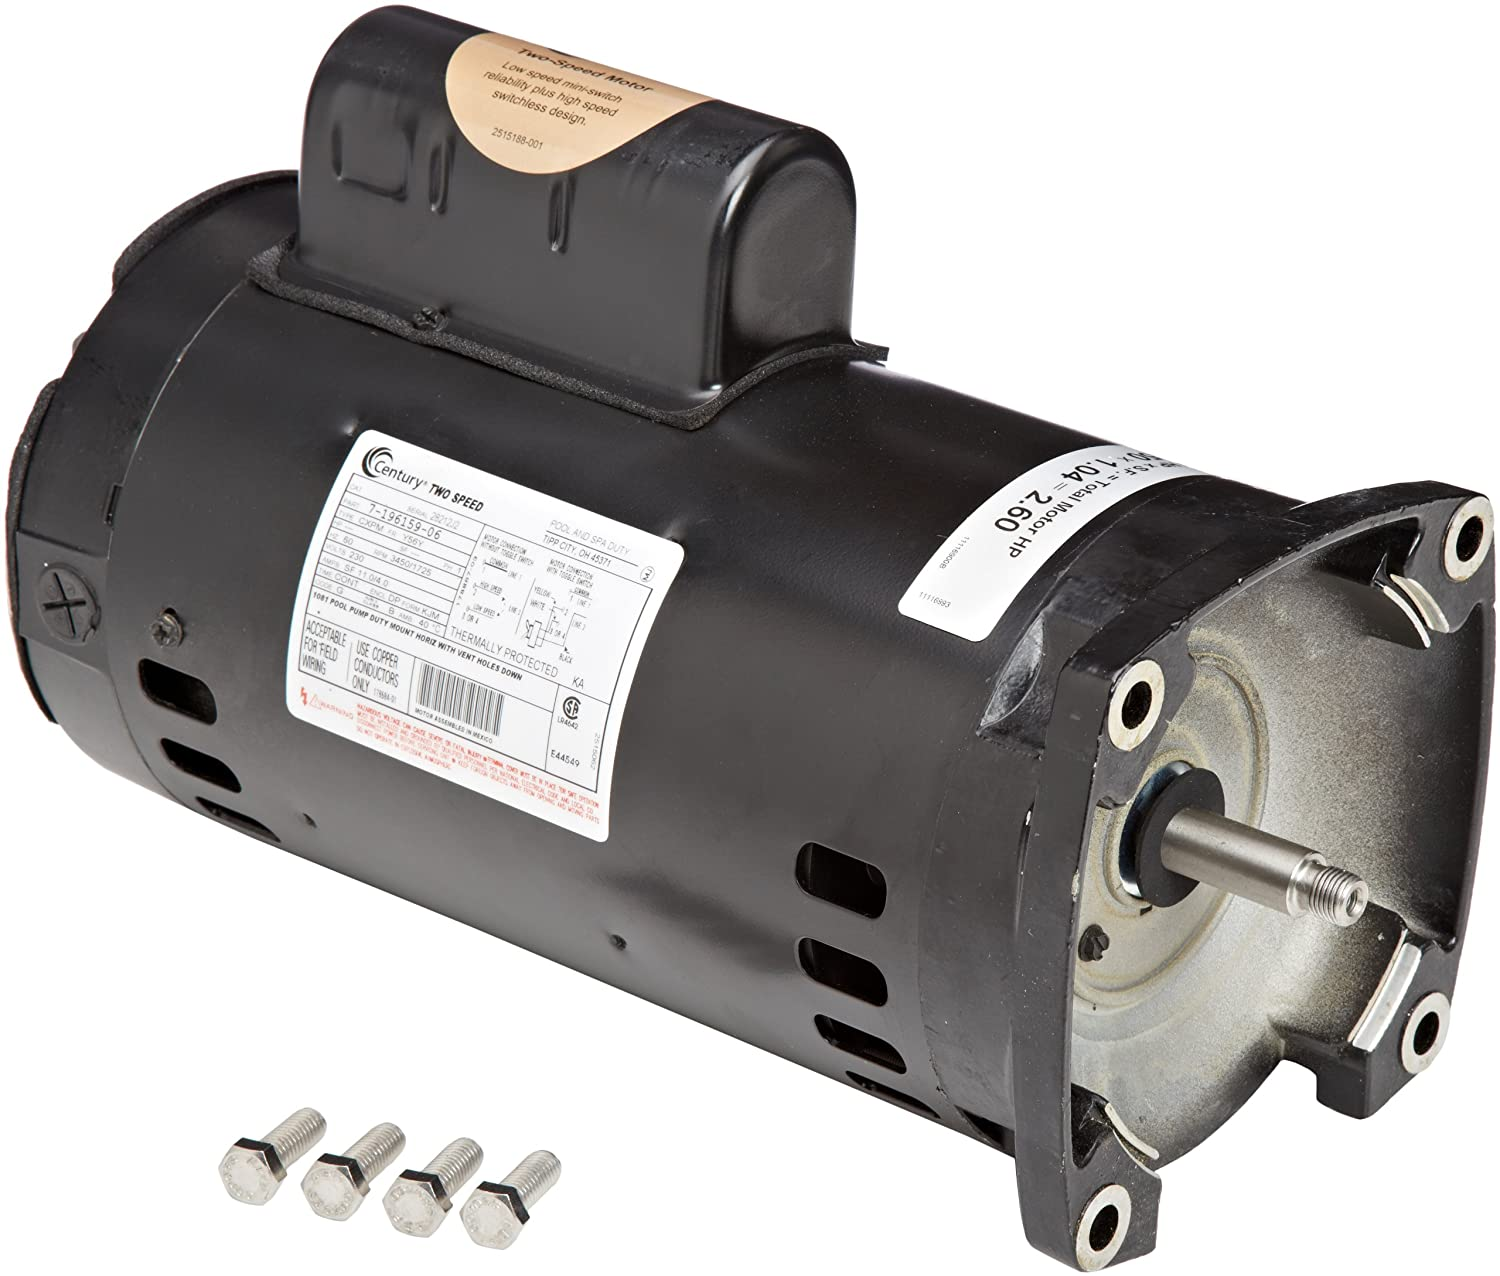 Zodiac R0479309 25 Hp 2 Speed Motor Replacement For Pool Wiring Diagram Jandy Stealth Plushp Series Pumps Swimming And Spa Supplies Garden